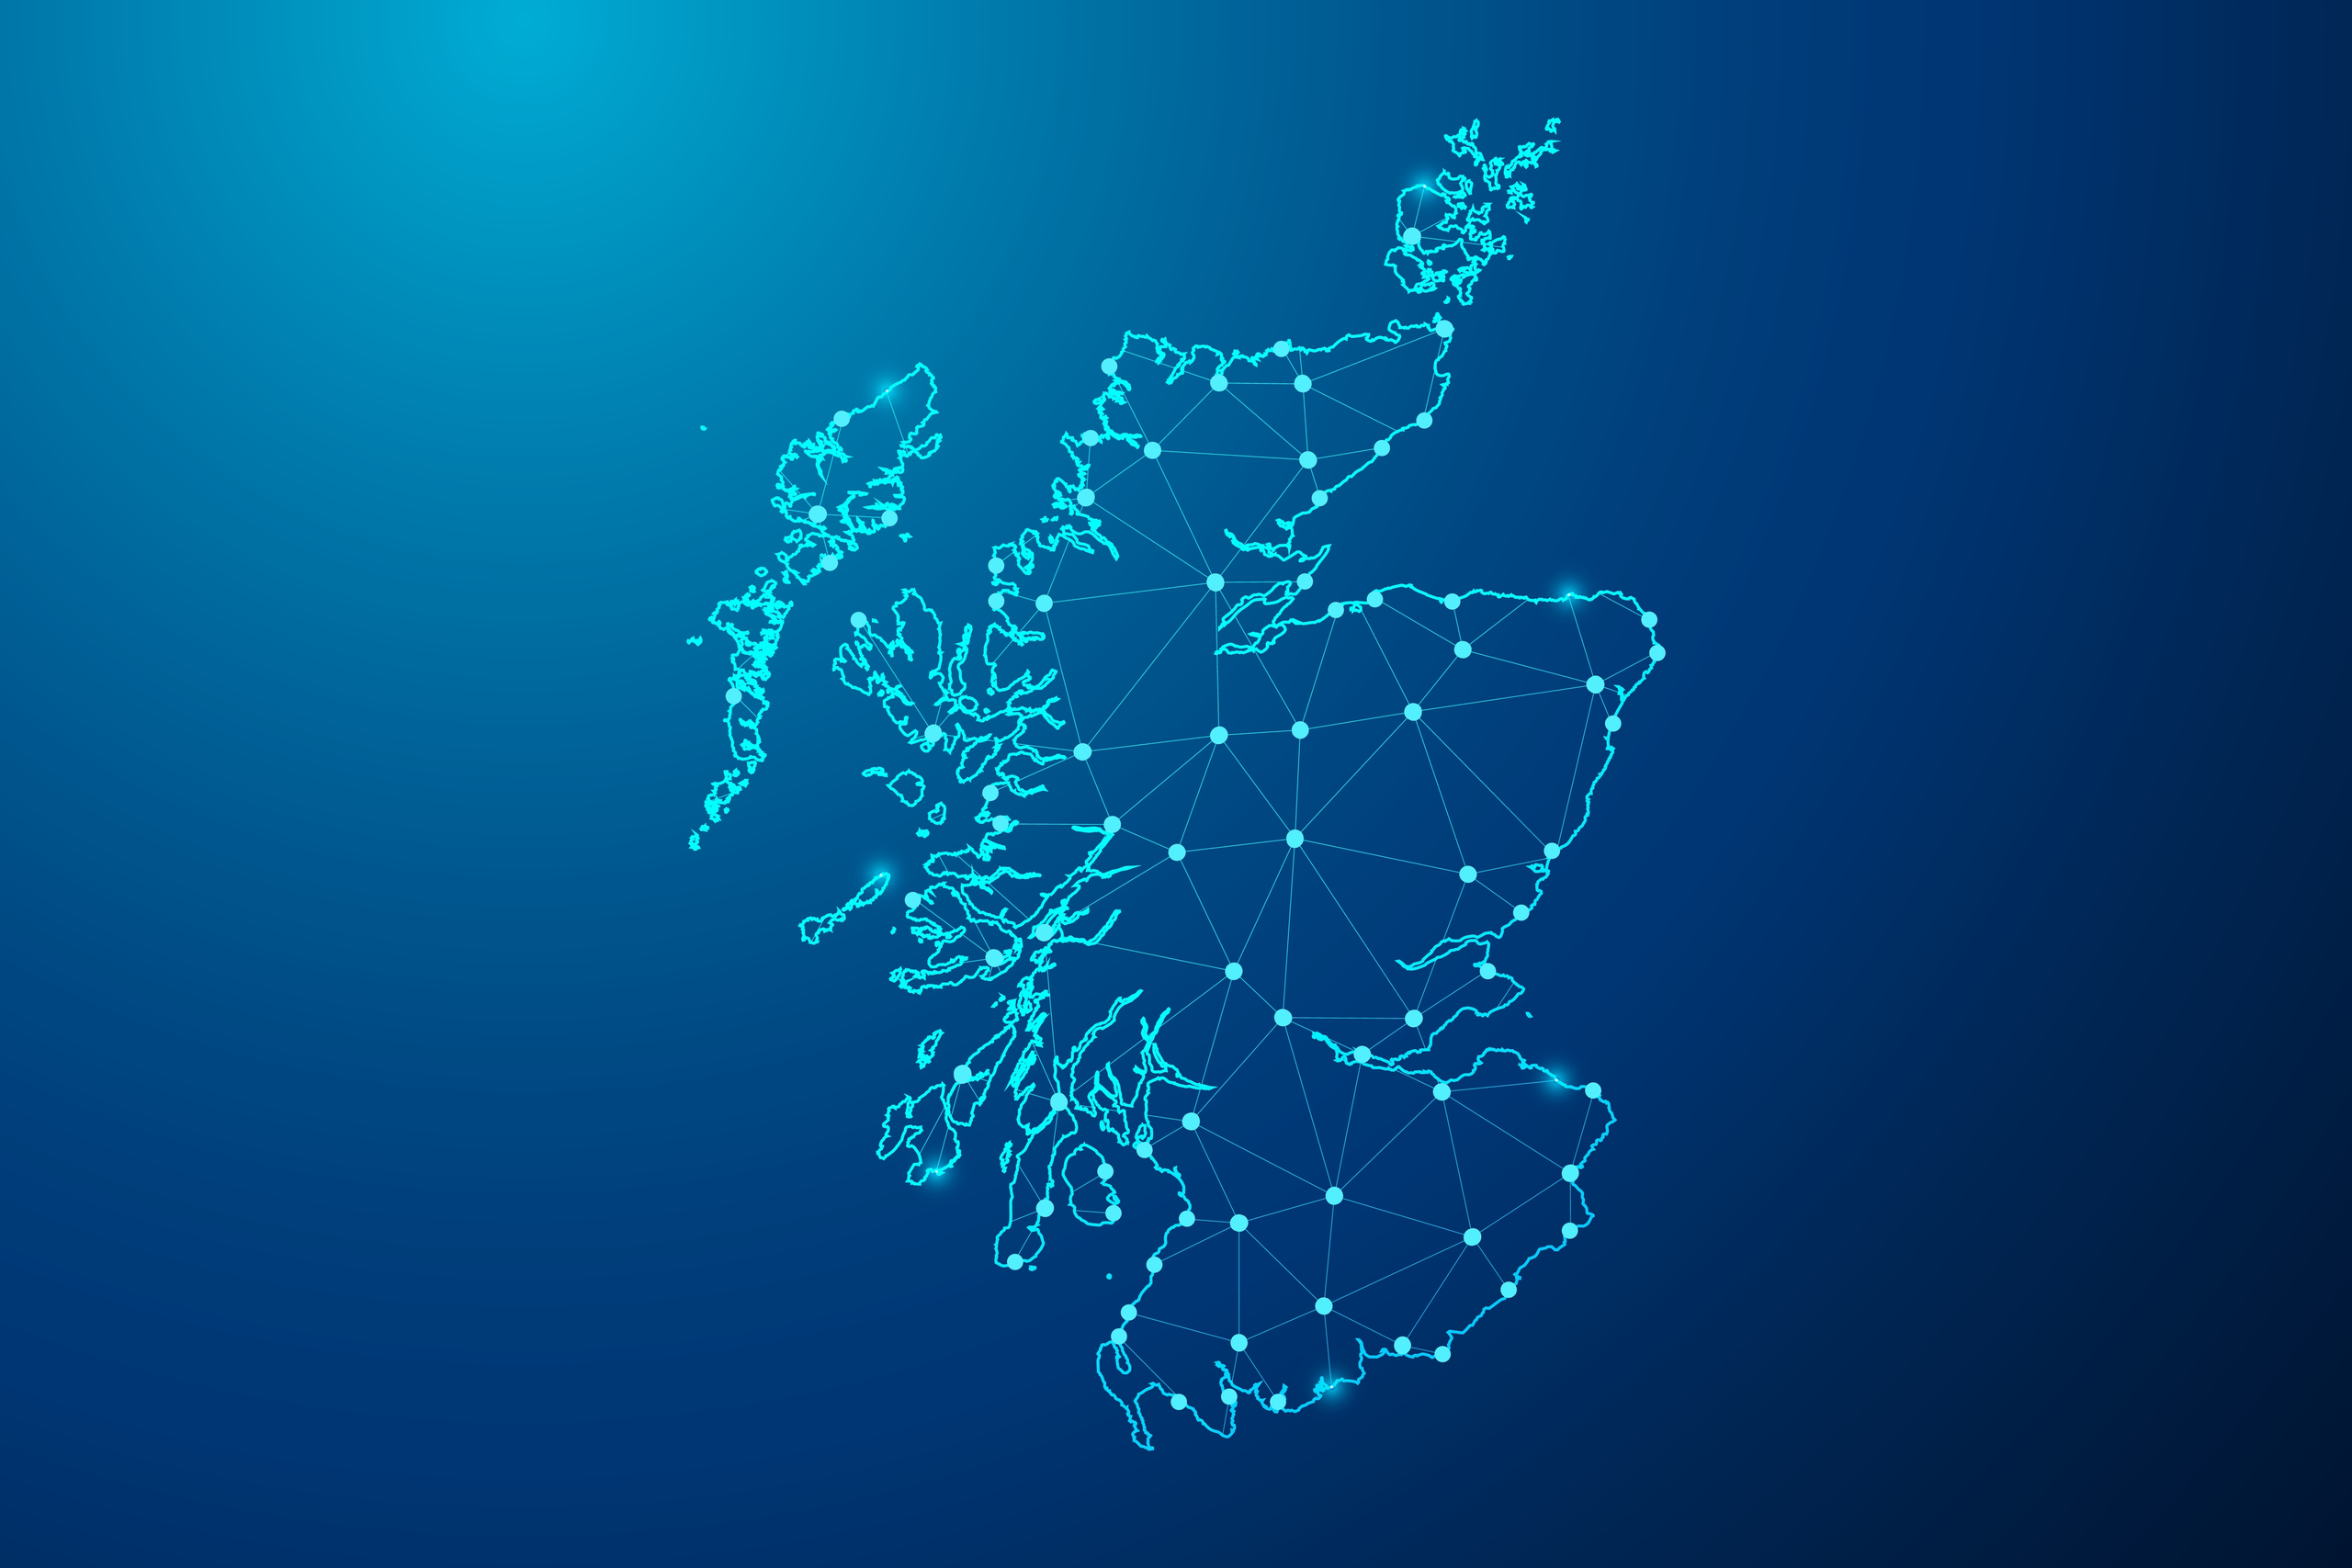 Plexal is working on the business case for the first Scottish Cyber Security Innovation Hub